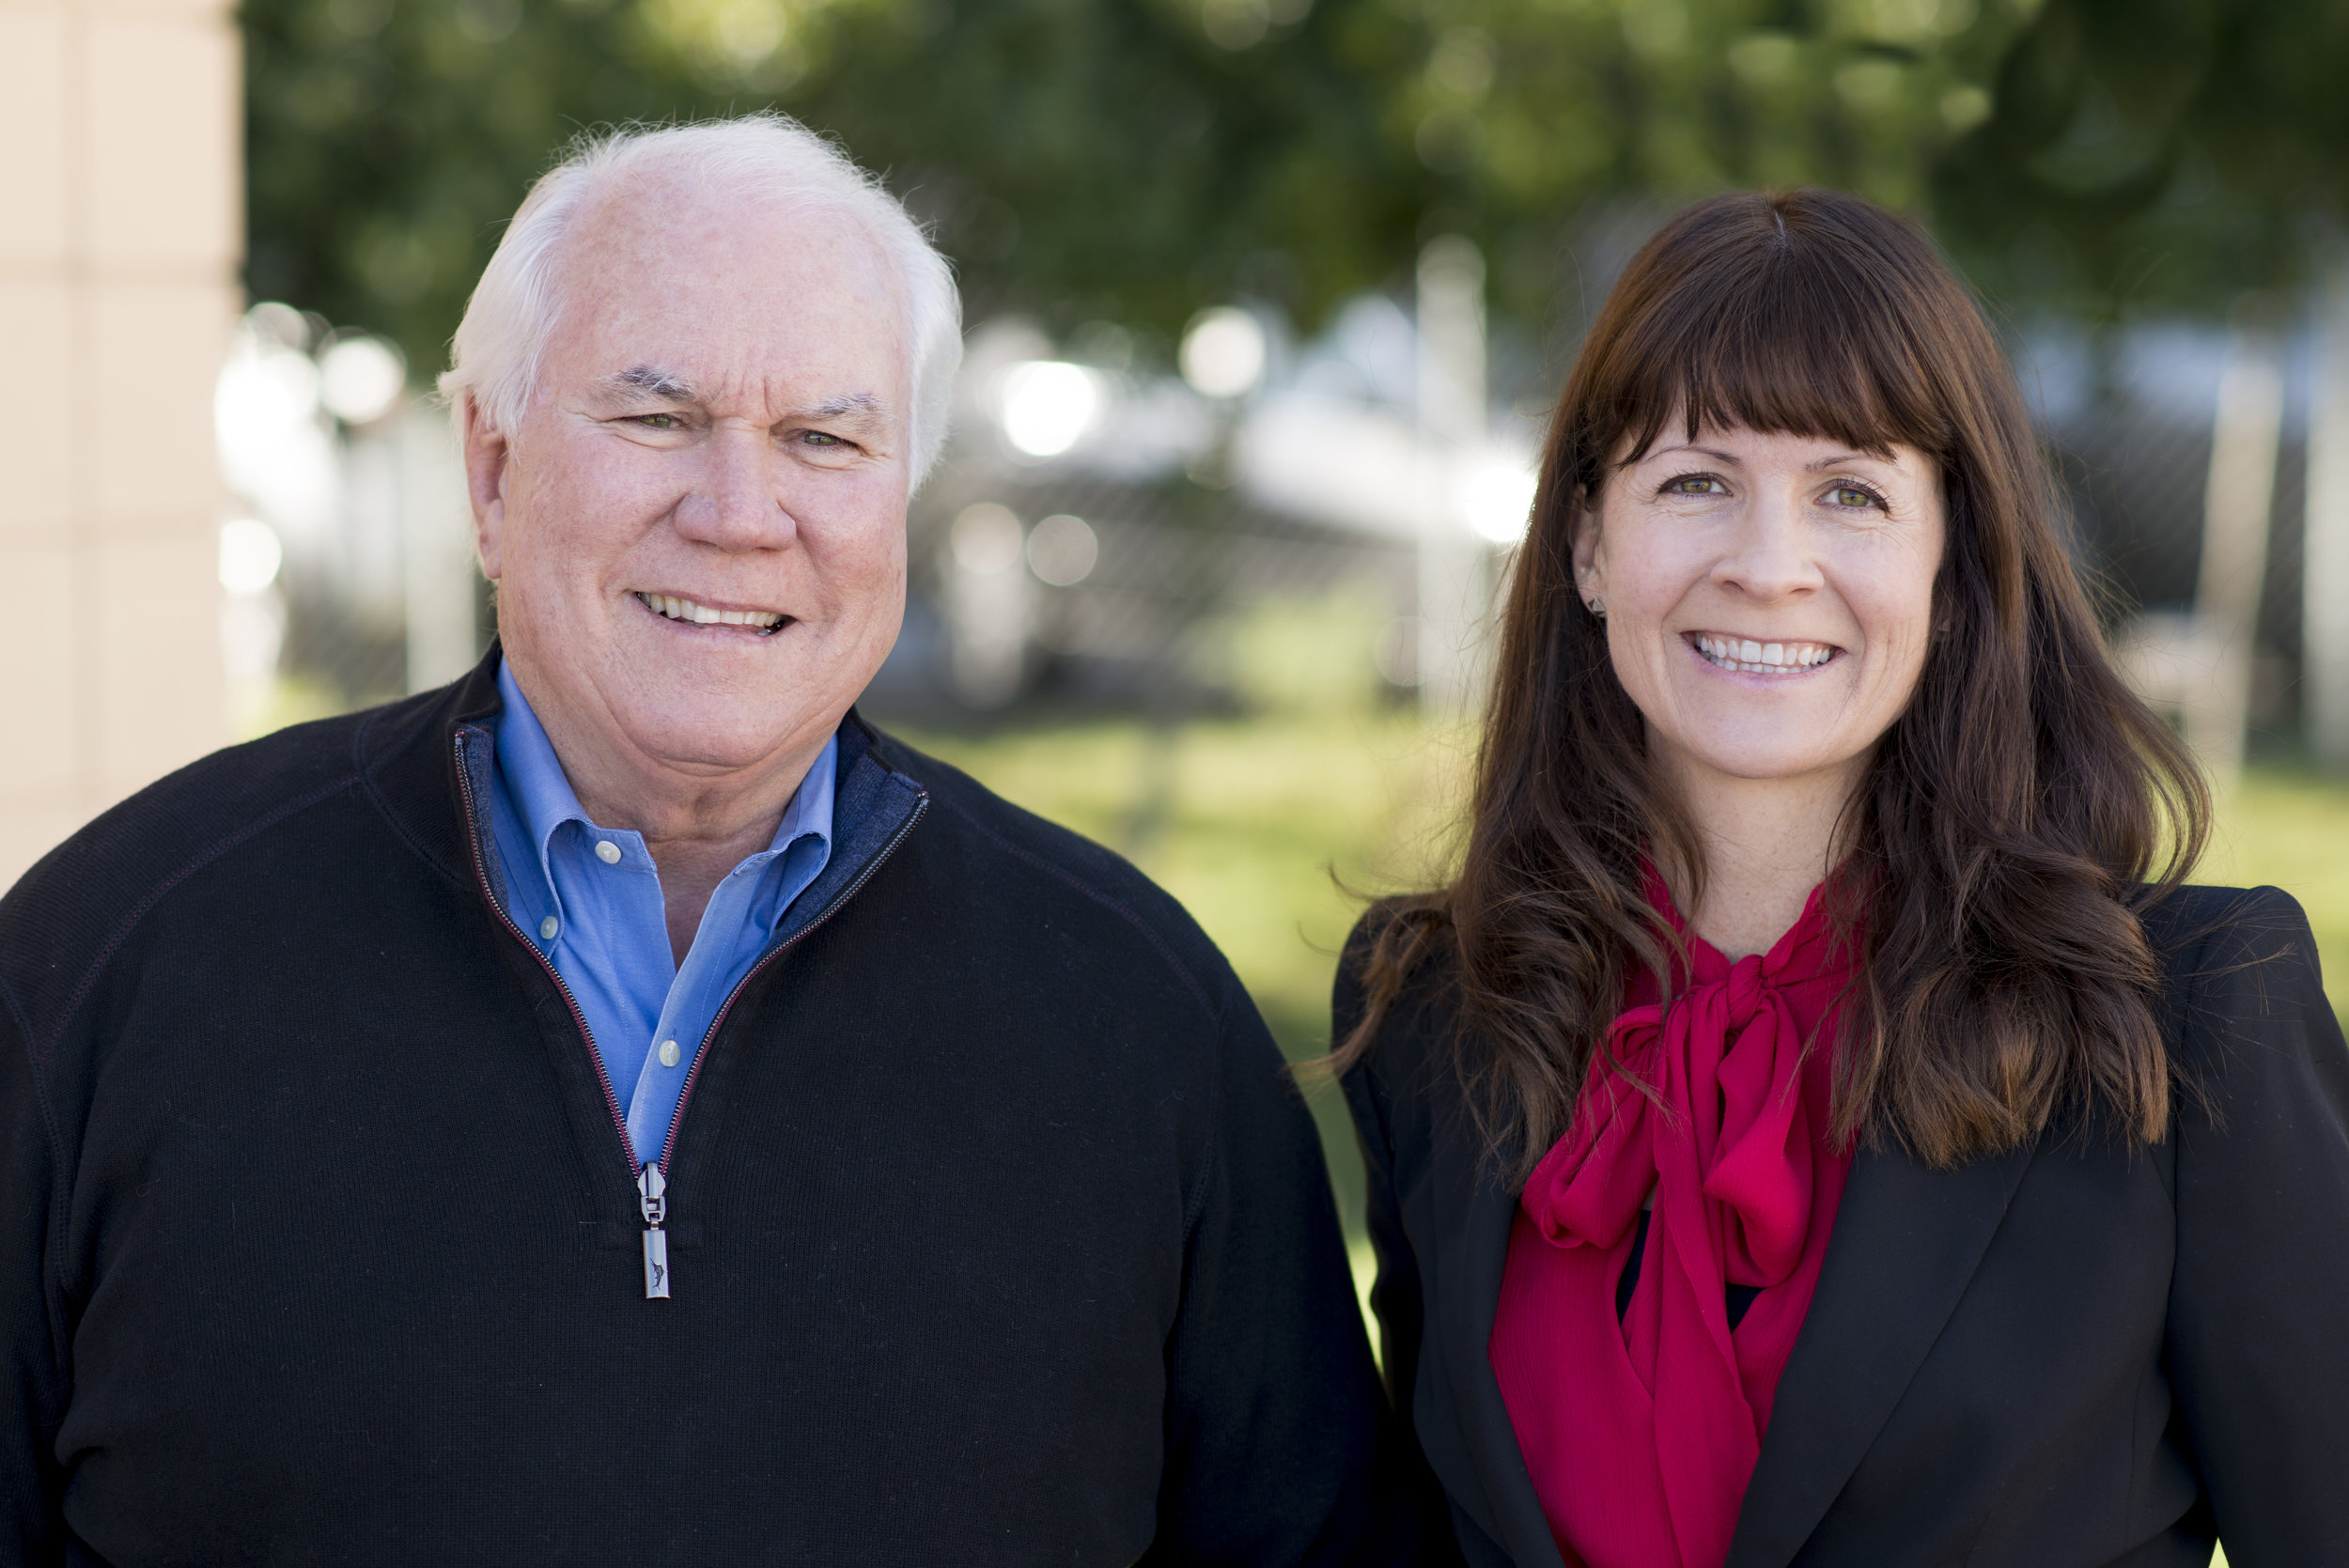 Pat Gallagher and Stephanie Martin, Big Game Bigger Impact authors